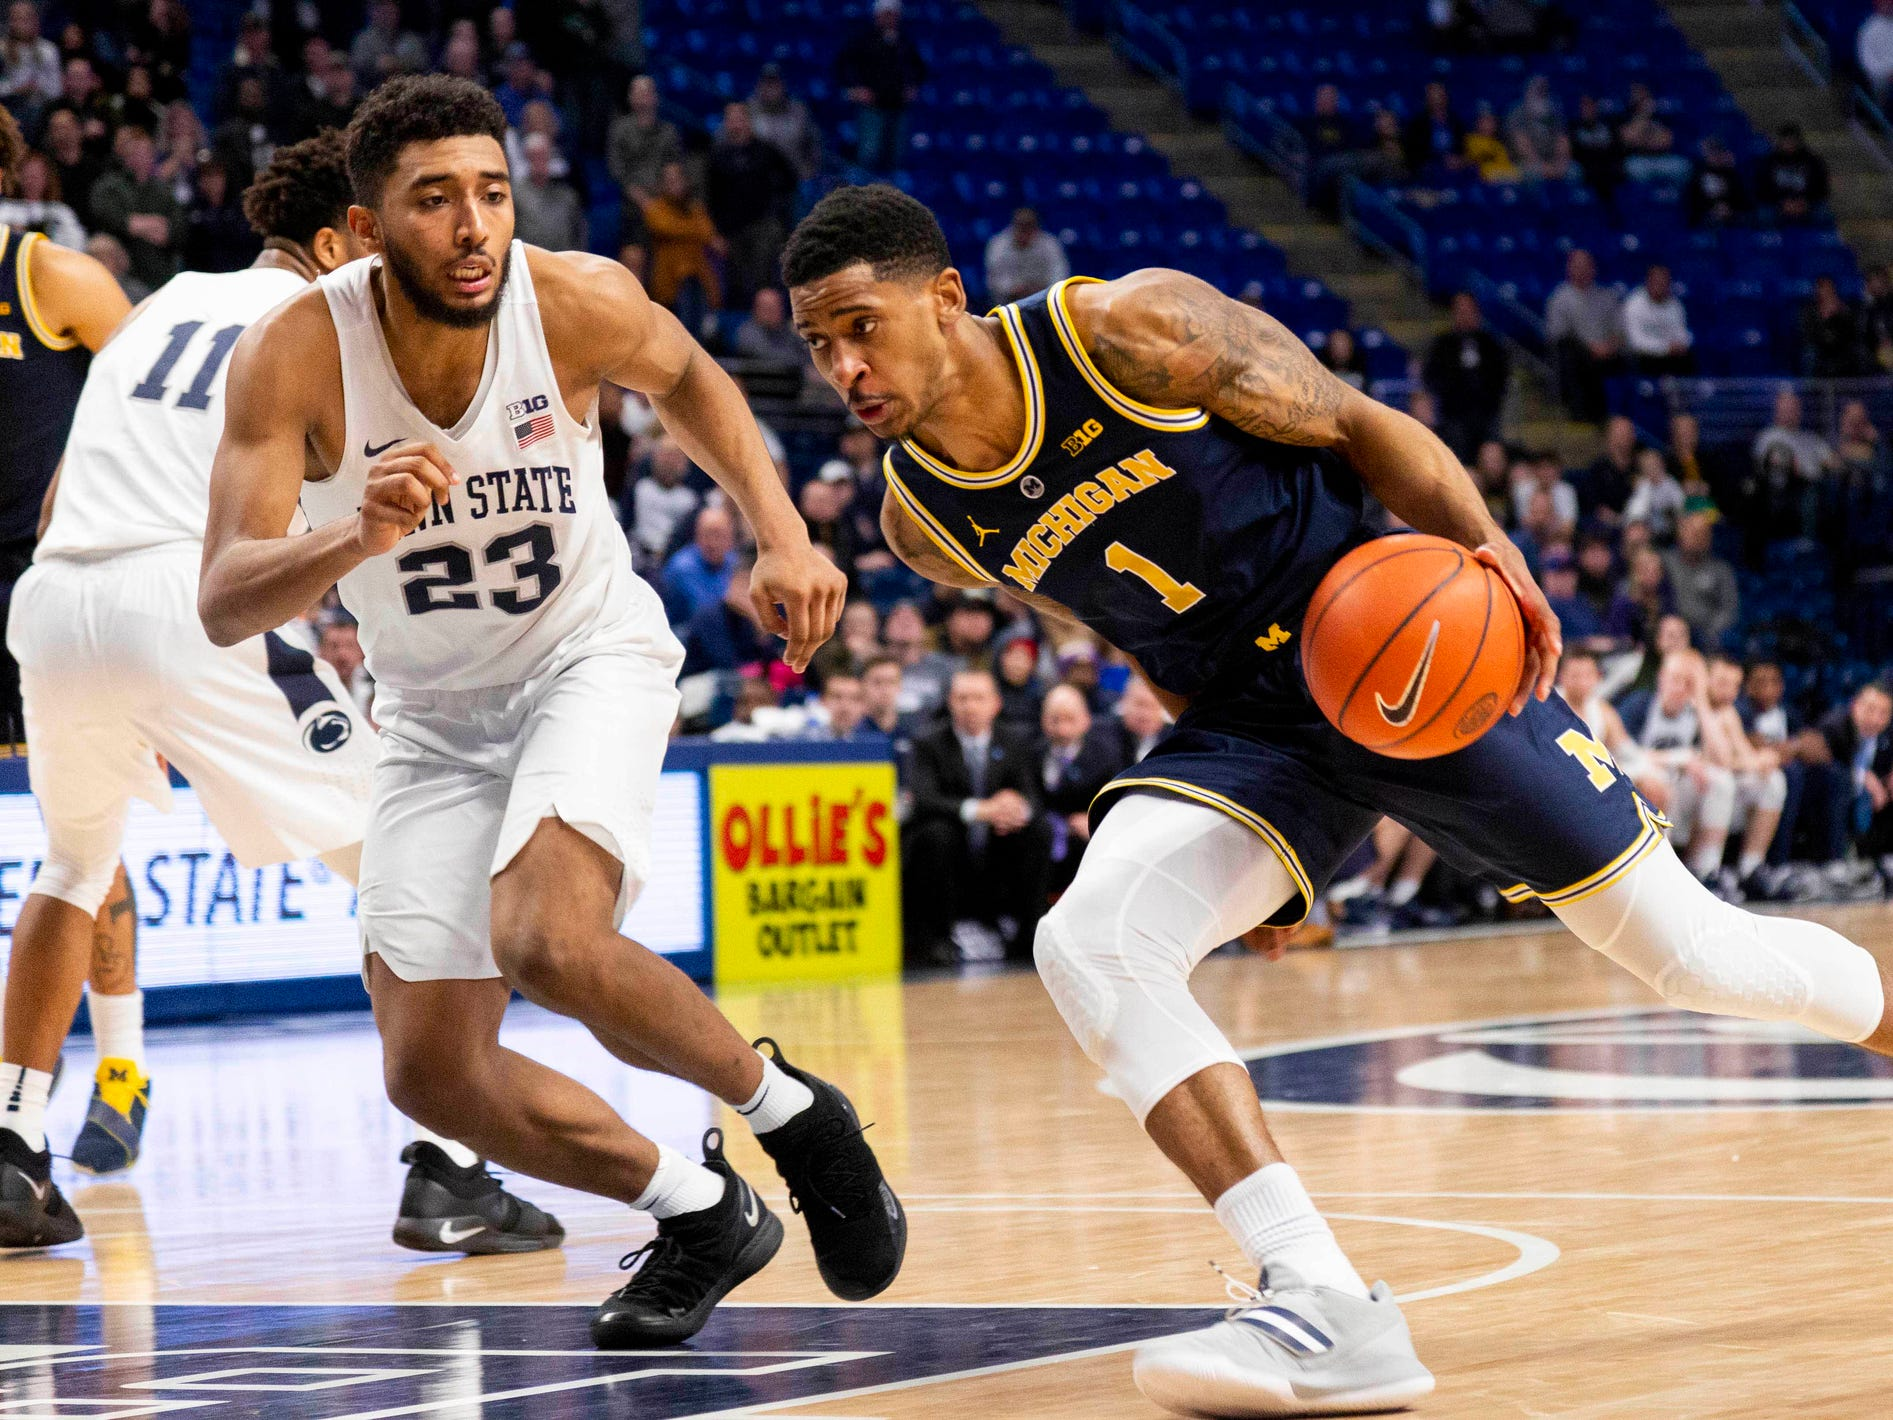 Michigan guard Charles Matthews dribbles around Penn State guard Josh Reaves during the second half Tuesday, Feb. 12, 2019, in State College, Pa.